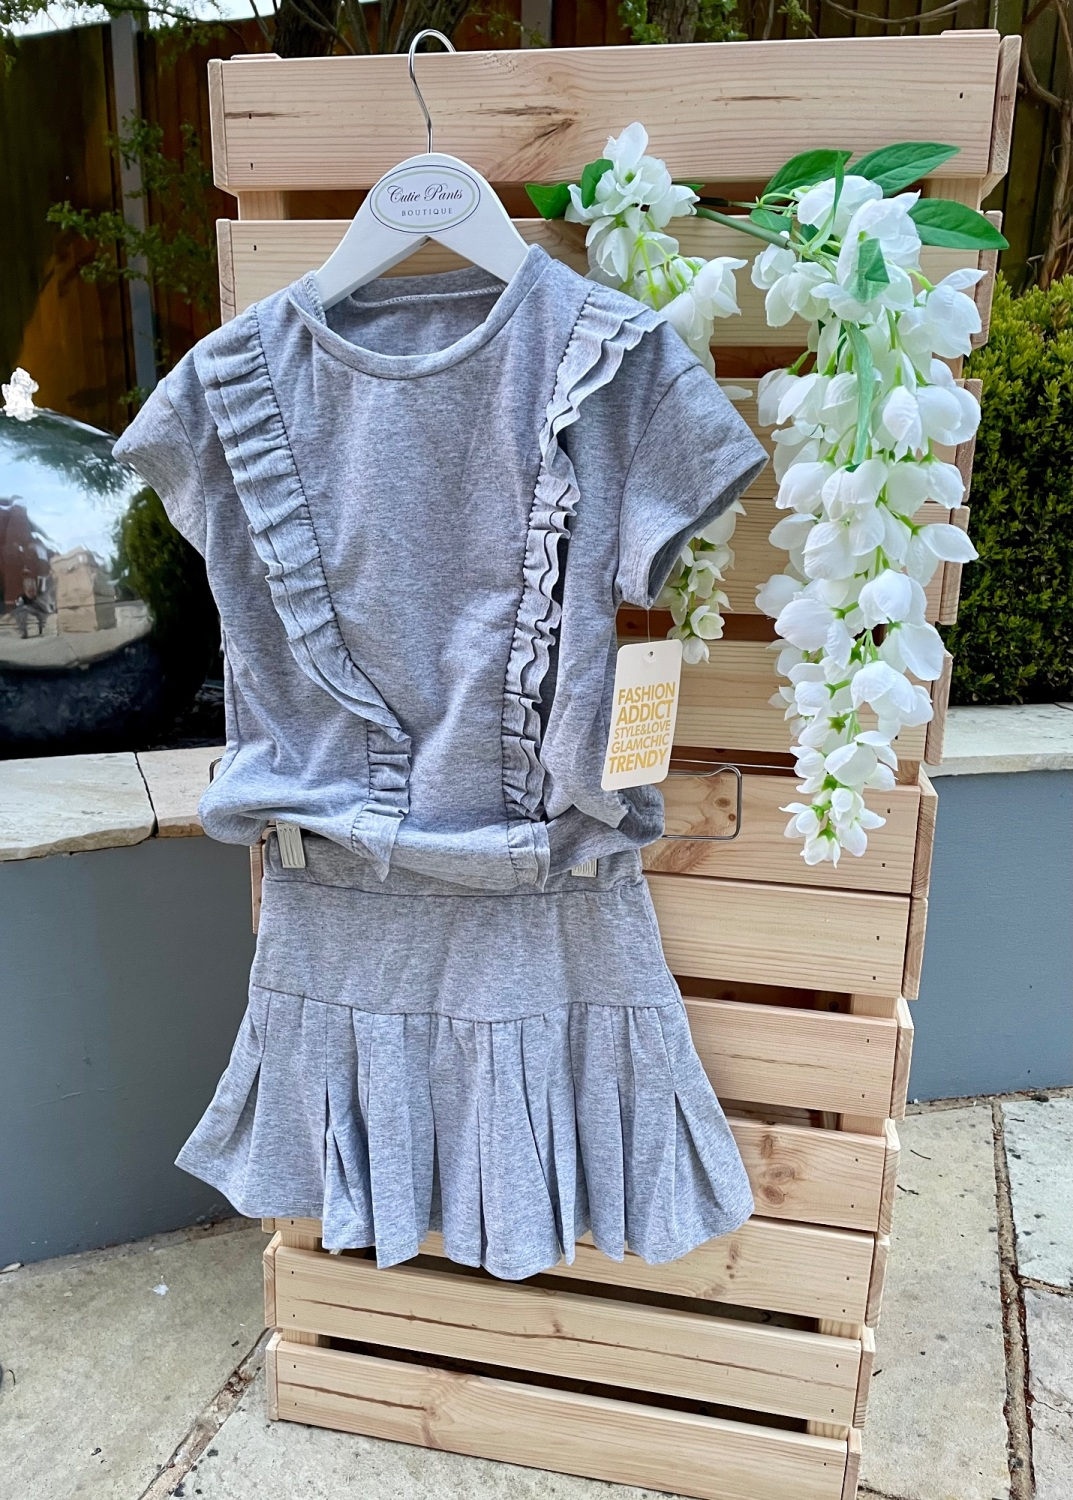 Tennis Style Skirt and Top Co-ord